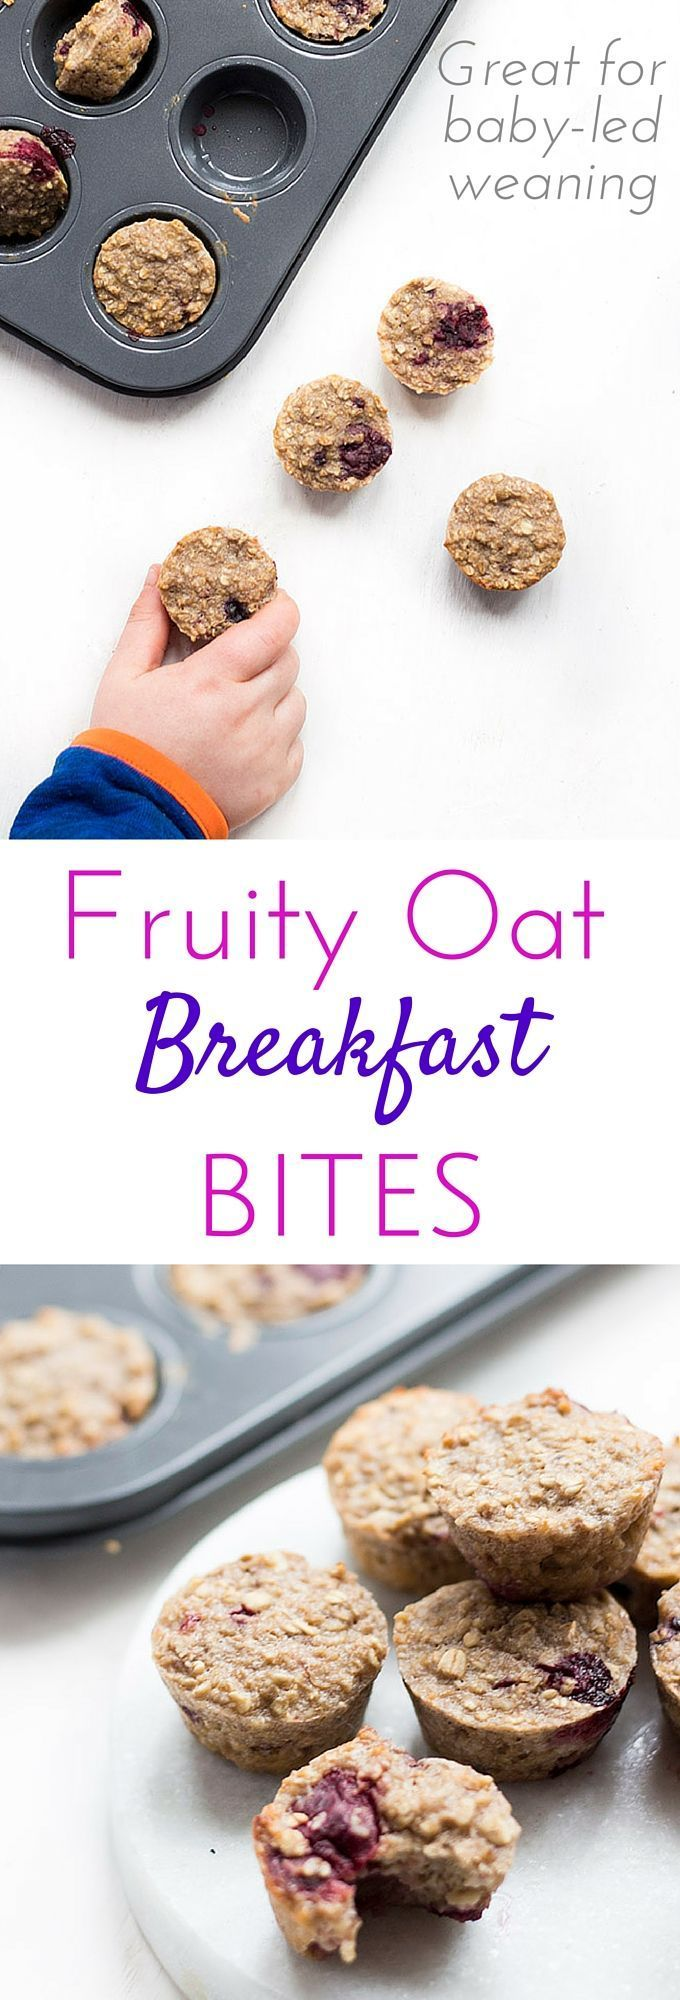 Fruity Oat Breakfast Bites. No refined sugar, sweetened only with fruit. Great for blw (baby-led weaning)